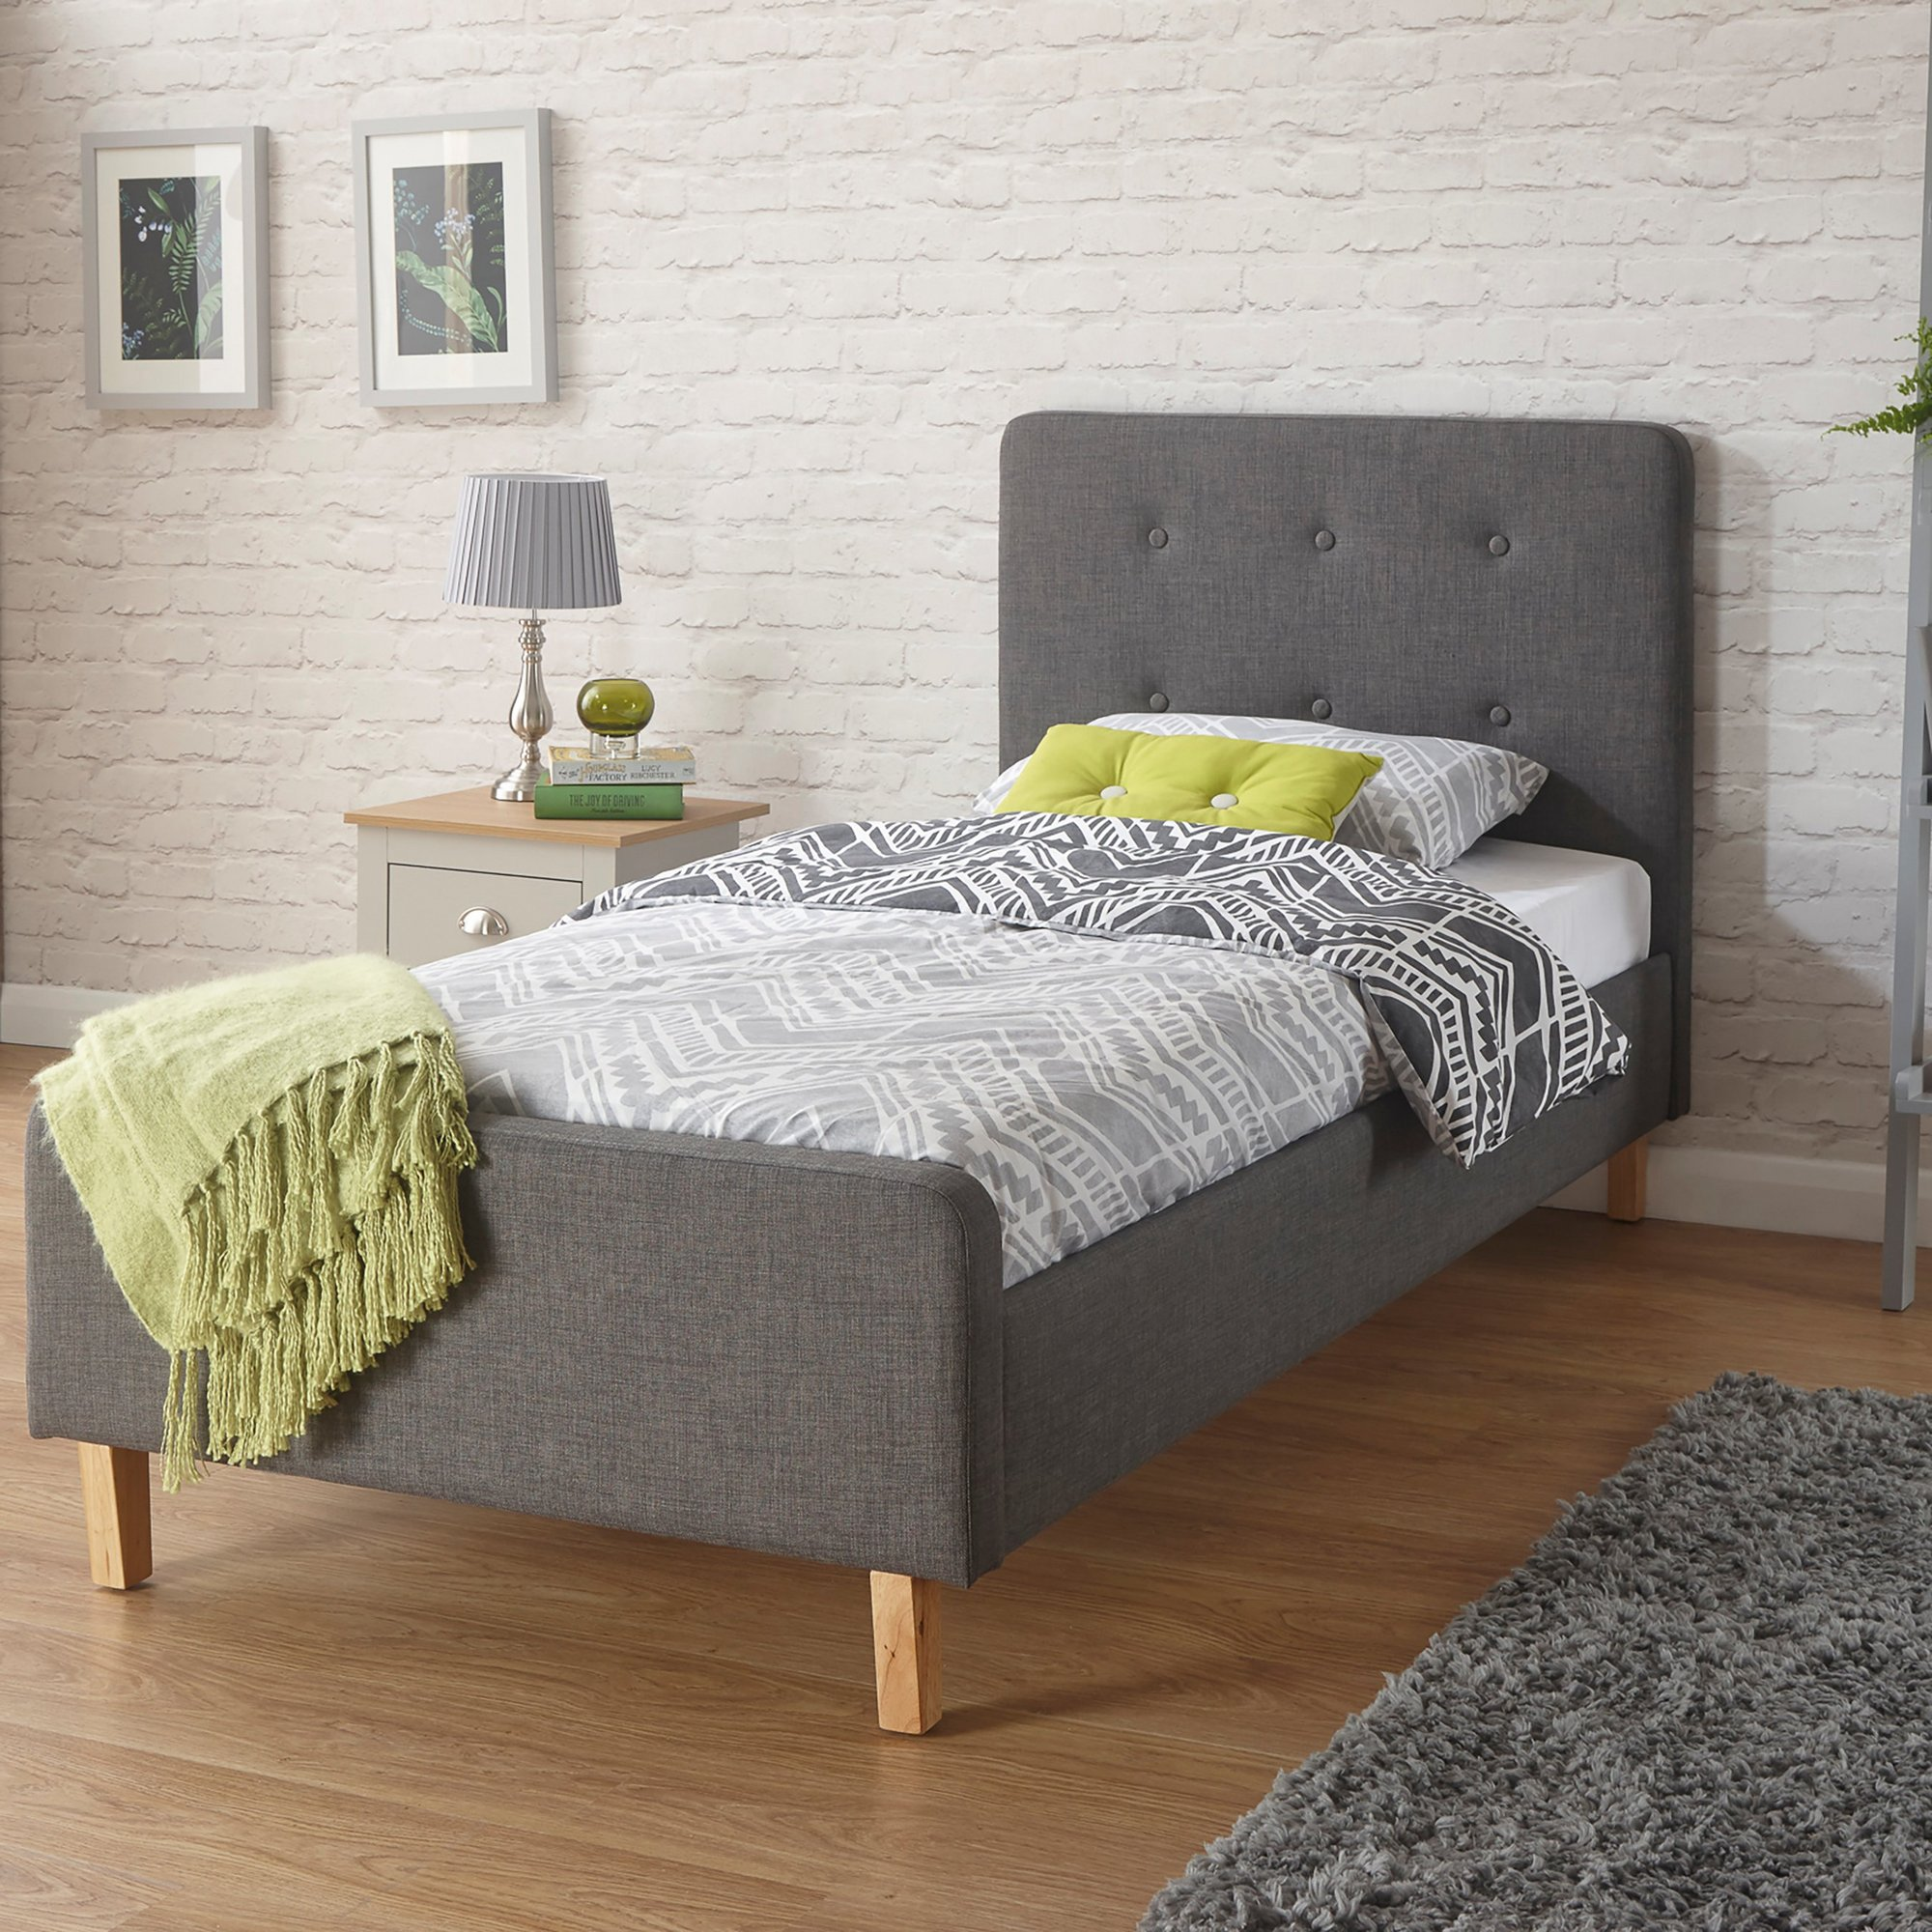 Image of Ashbourne Bed without Mattress